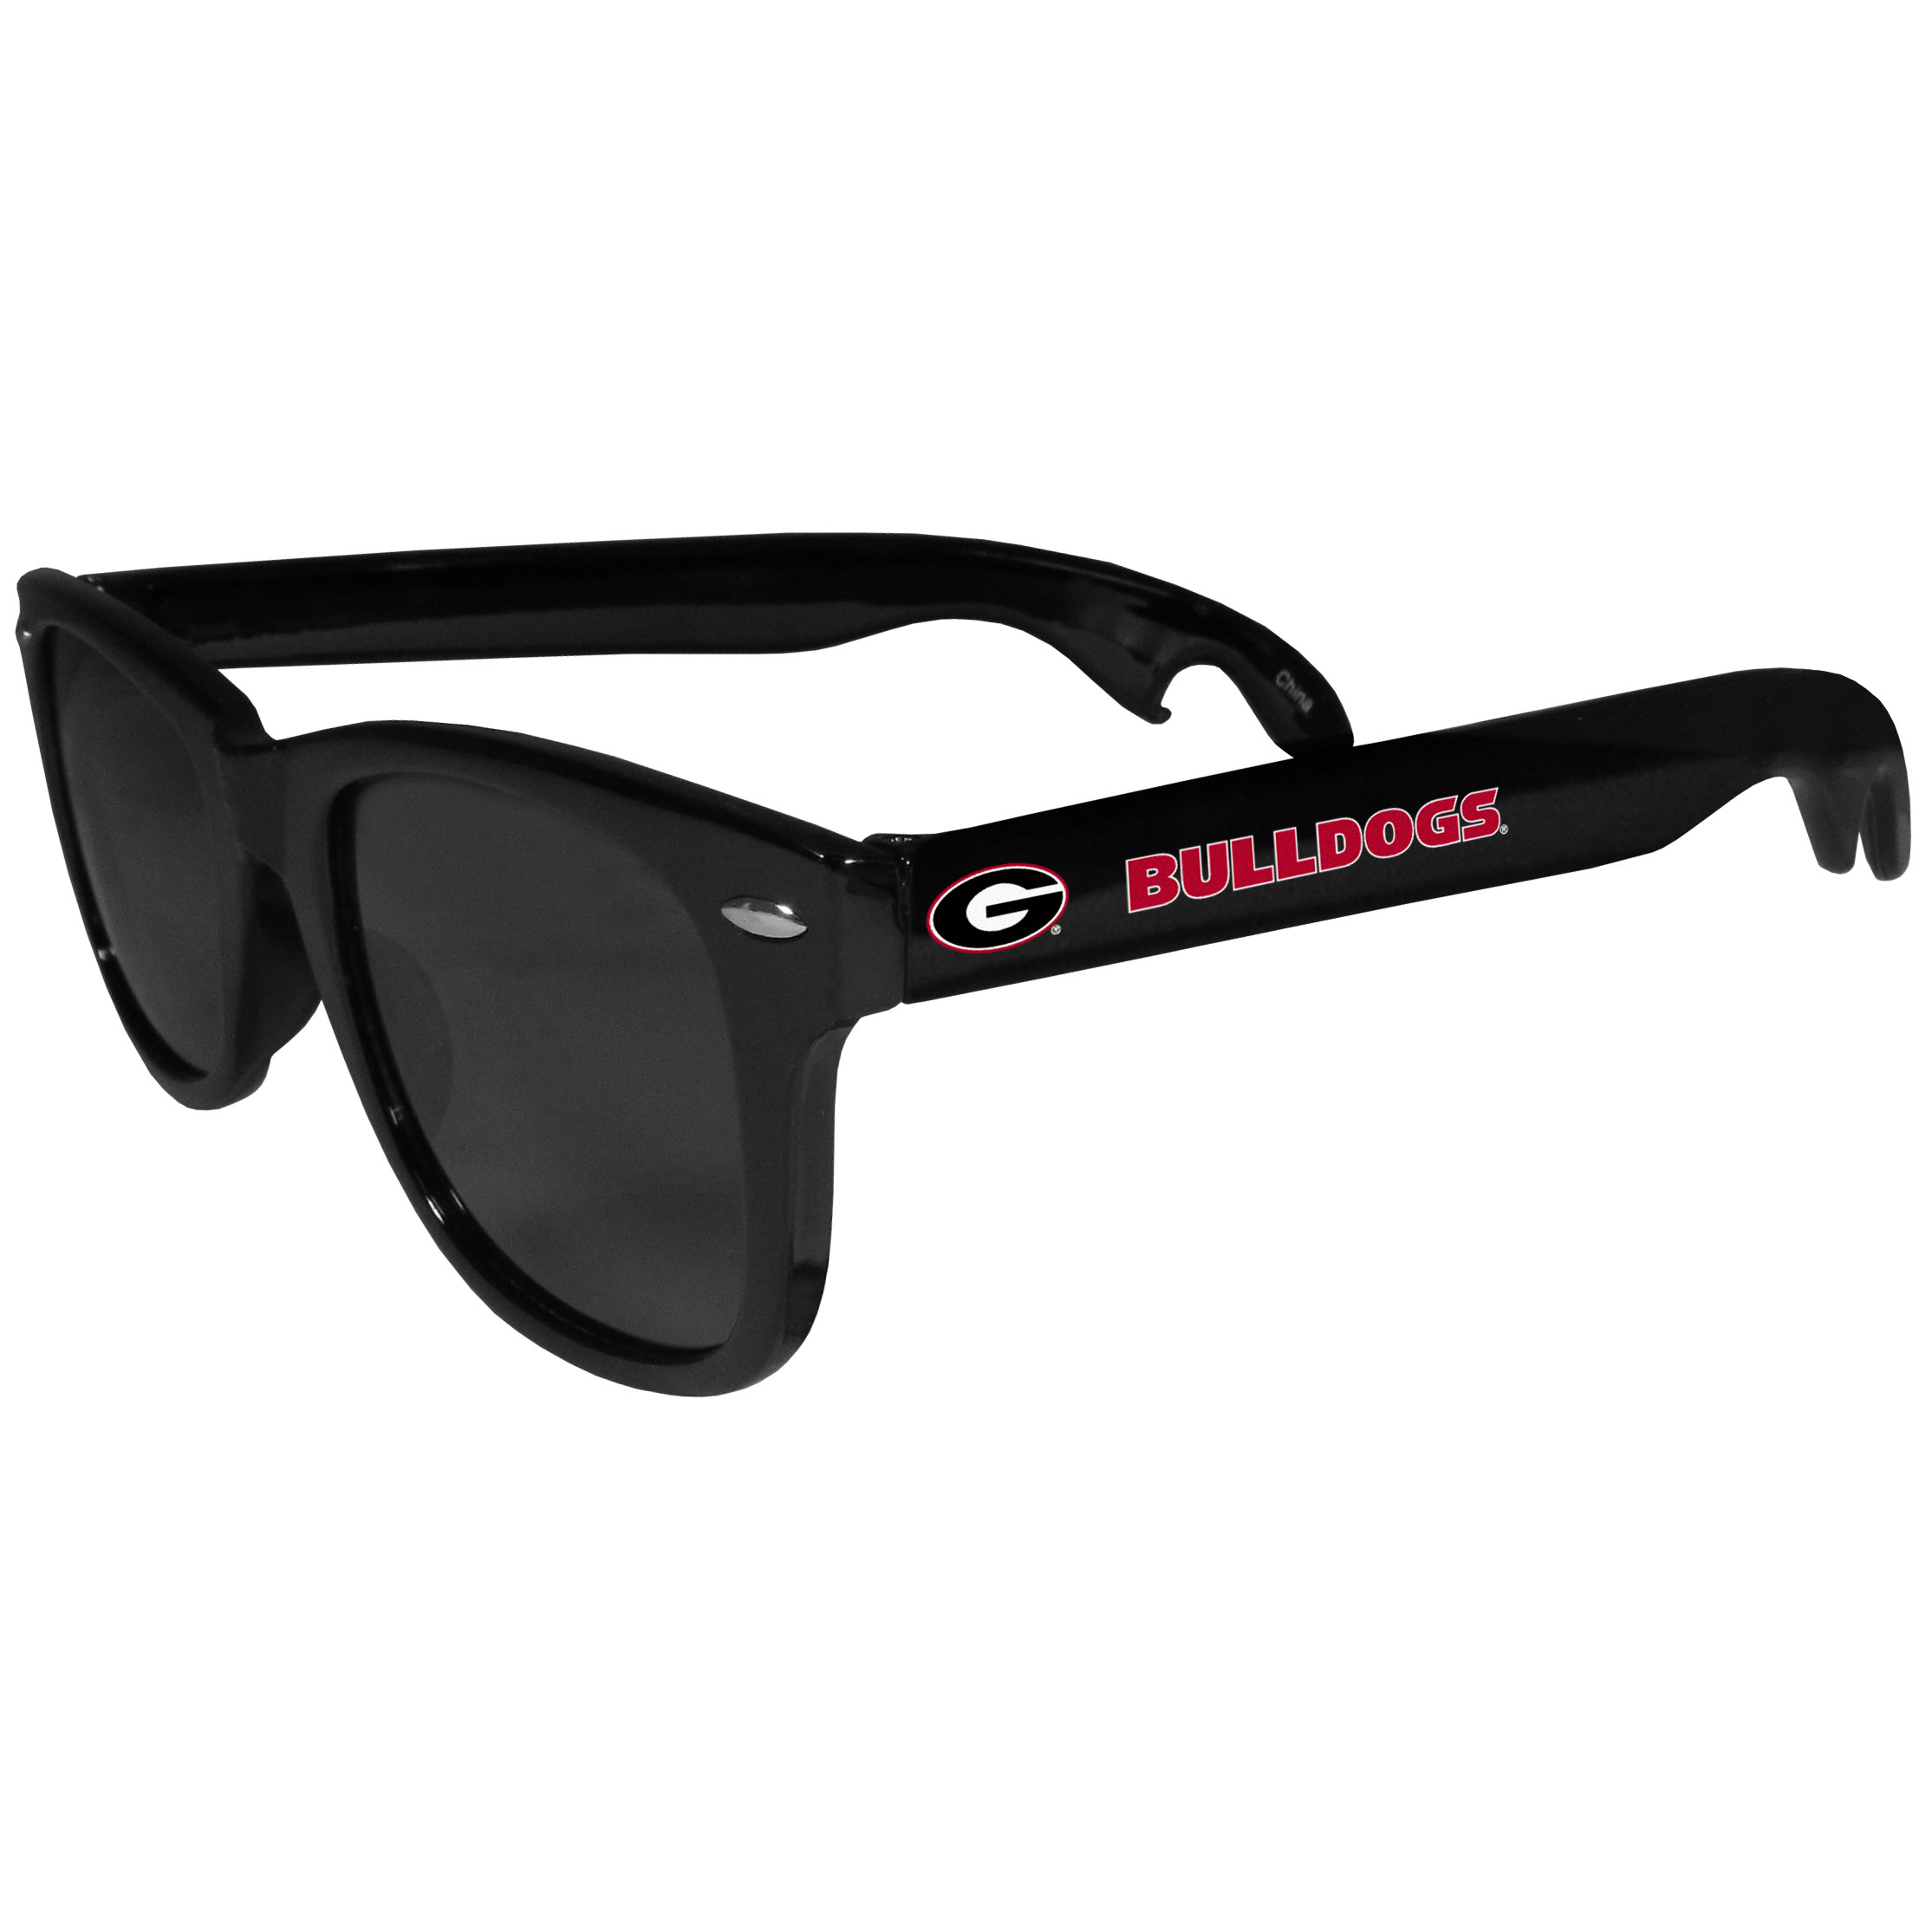 Georgia Bulldogs Beachfarer Bottle Opener Sunglasses - Seriously, these sunglasses open bottles! Keep the party going with these amazing Georgia Bulldogs bottle opener sunglasses. The stylish retro frames feature team designs on the arms and functional bottle openers on the end of the arms. Whether you are at the beach or having a backyard BBQ on game day, these shades will keep your eyes protected with 100% UVA/UVB protection and keep you hydrated with the handy bottle opener arms.